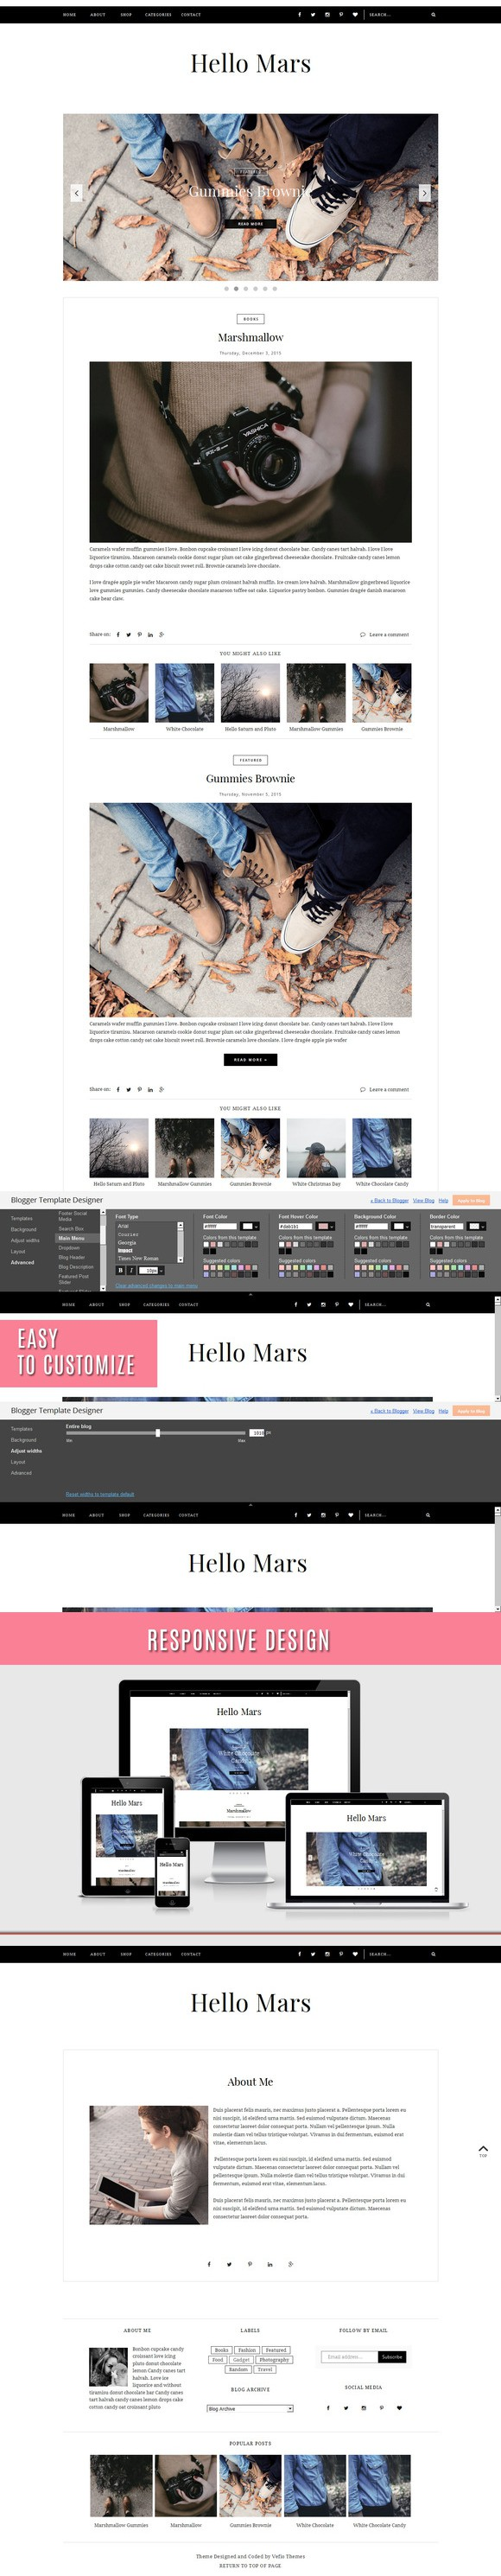 Blogger Template - Hello Mars   Template and Blogger templates